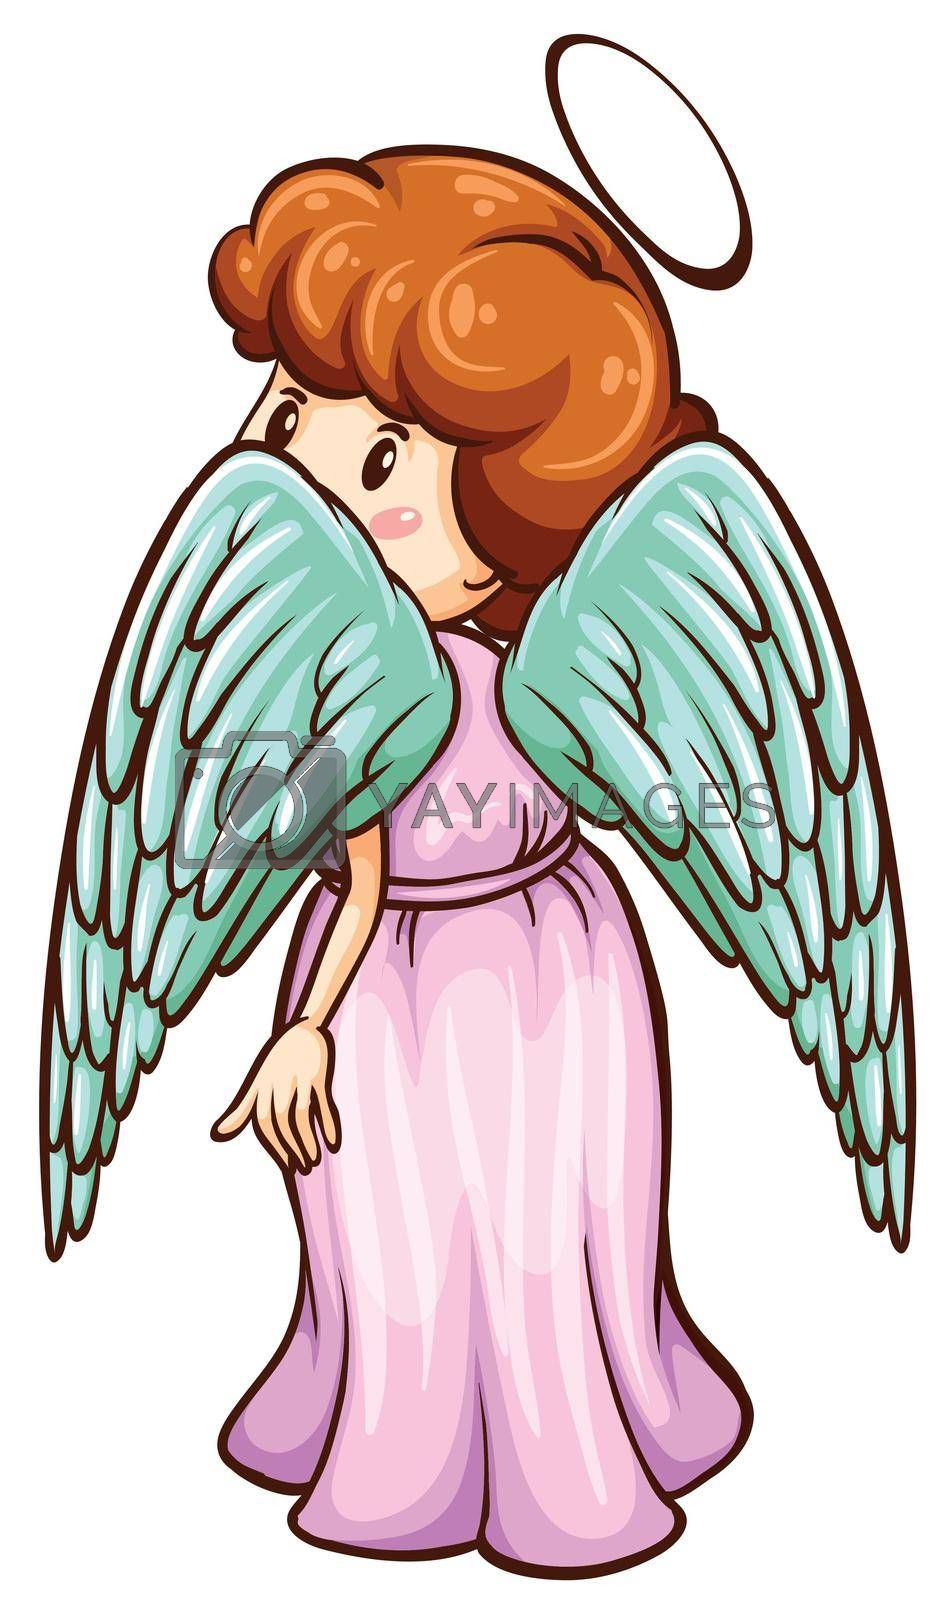 Royalty free image of A simple sketch of an angel by iimages